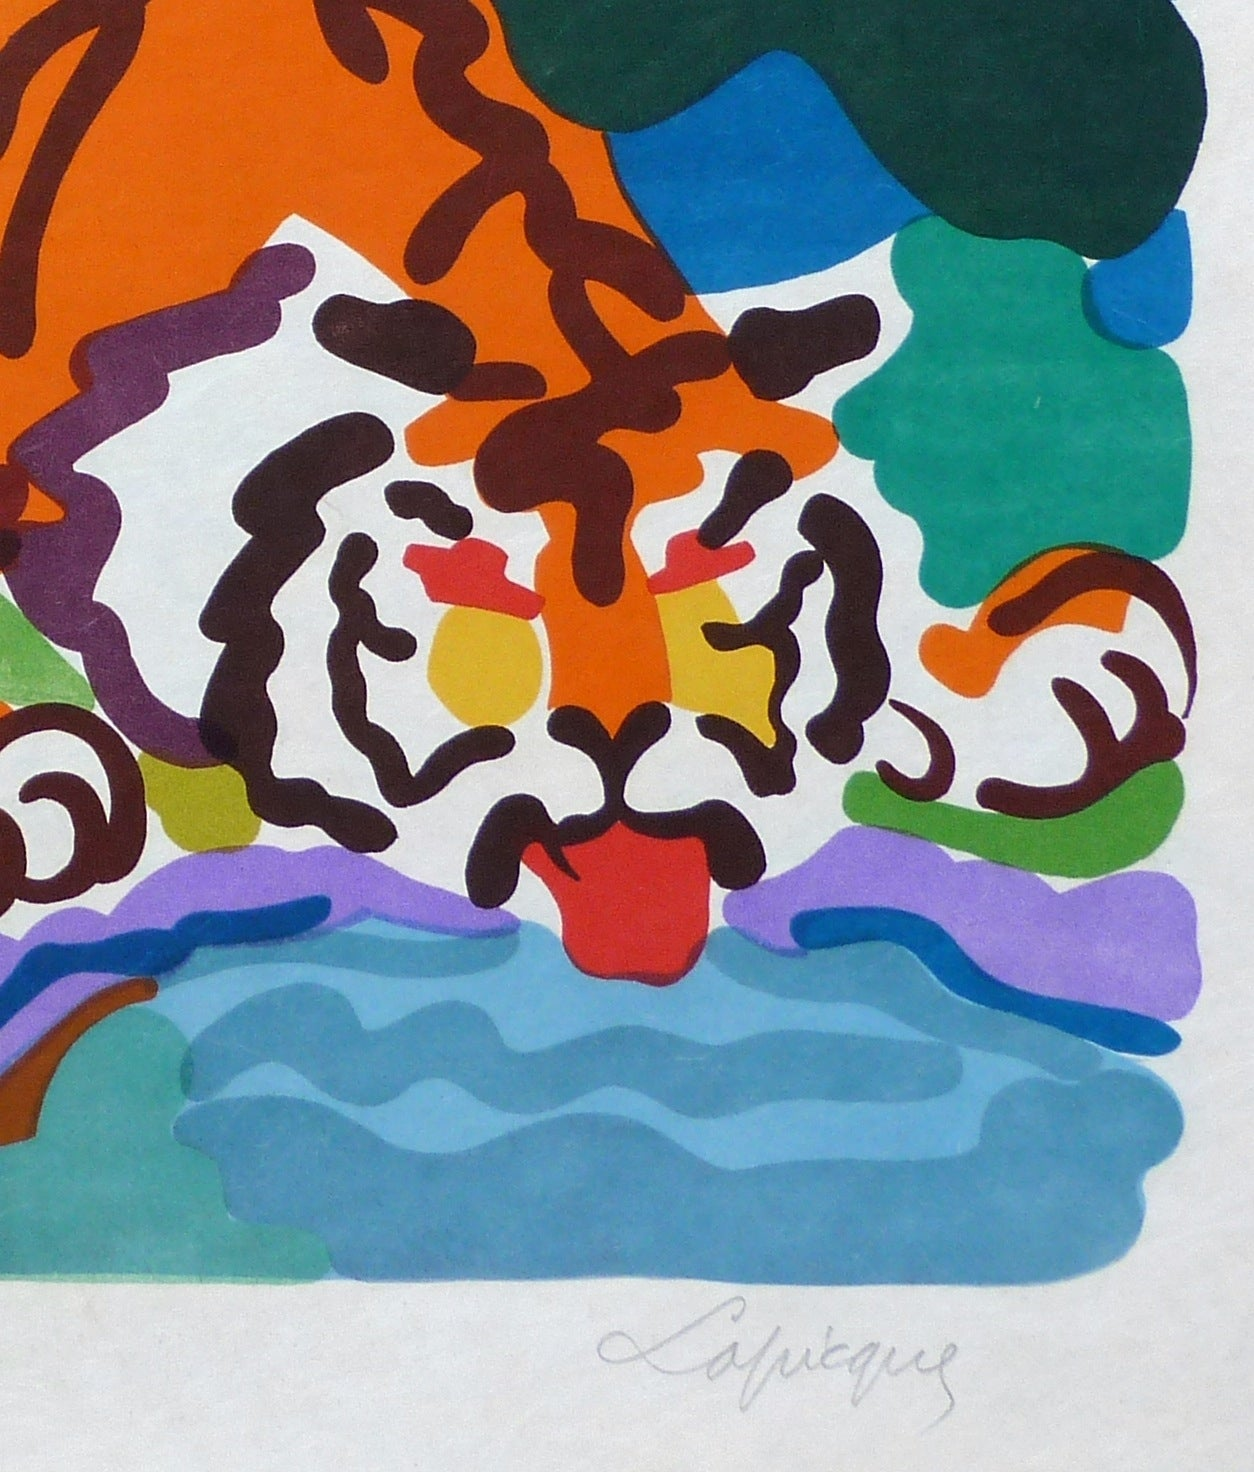 The Tiger - Print by Charles Lapicque